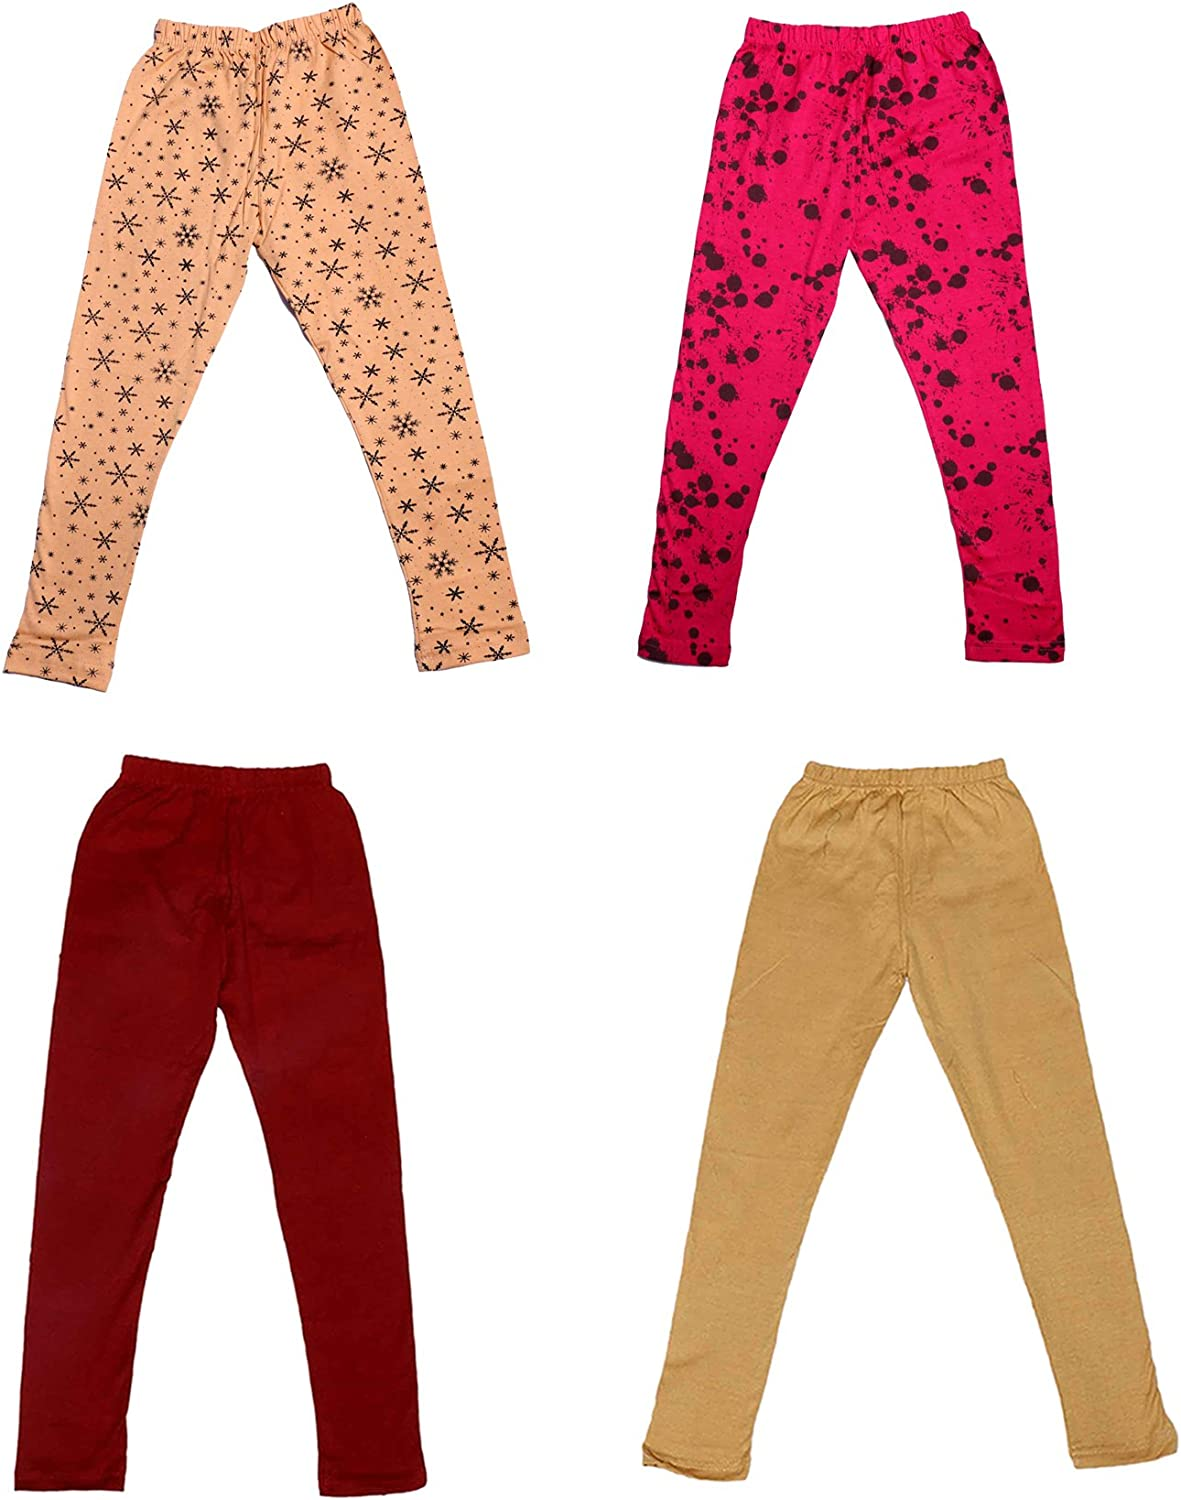 /_Multicolor/_Size-5-6 Years/_71400011920-IW-P4-28 Pack Of 4 and 2 Cotton Printed Legging Pants Indistar Girls 2 Cotton Solid Legging Pants